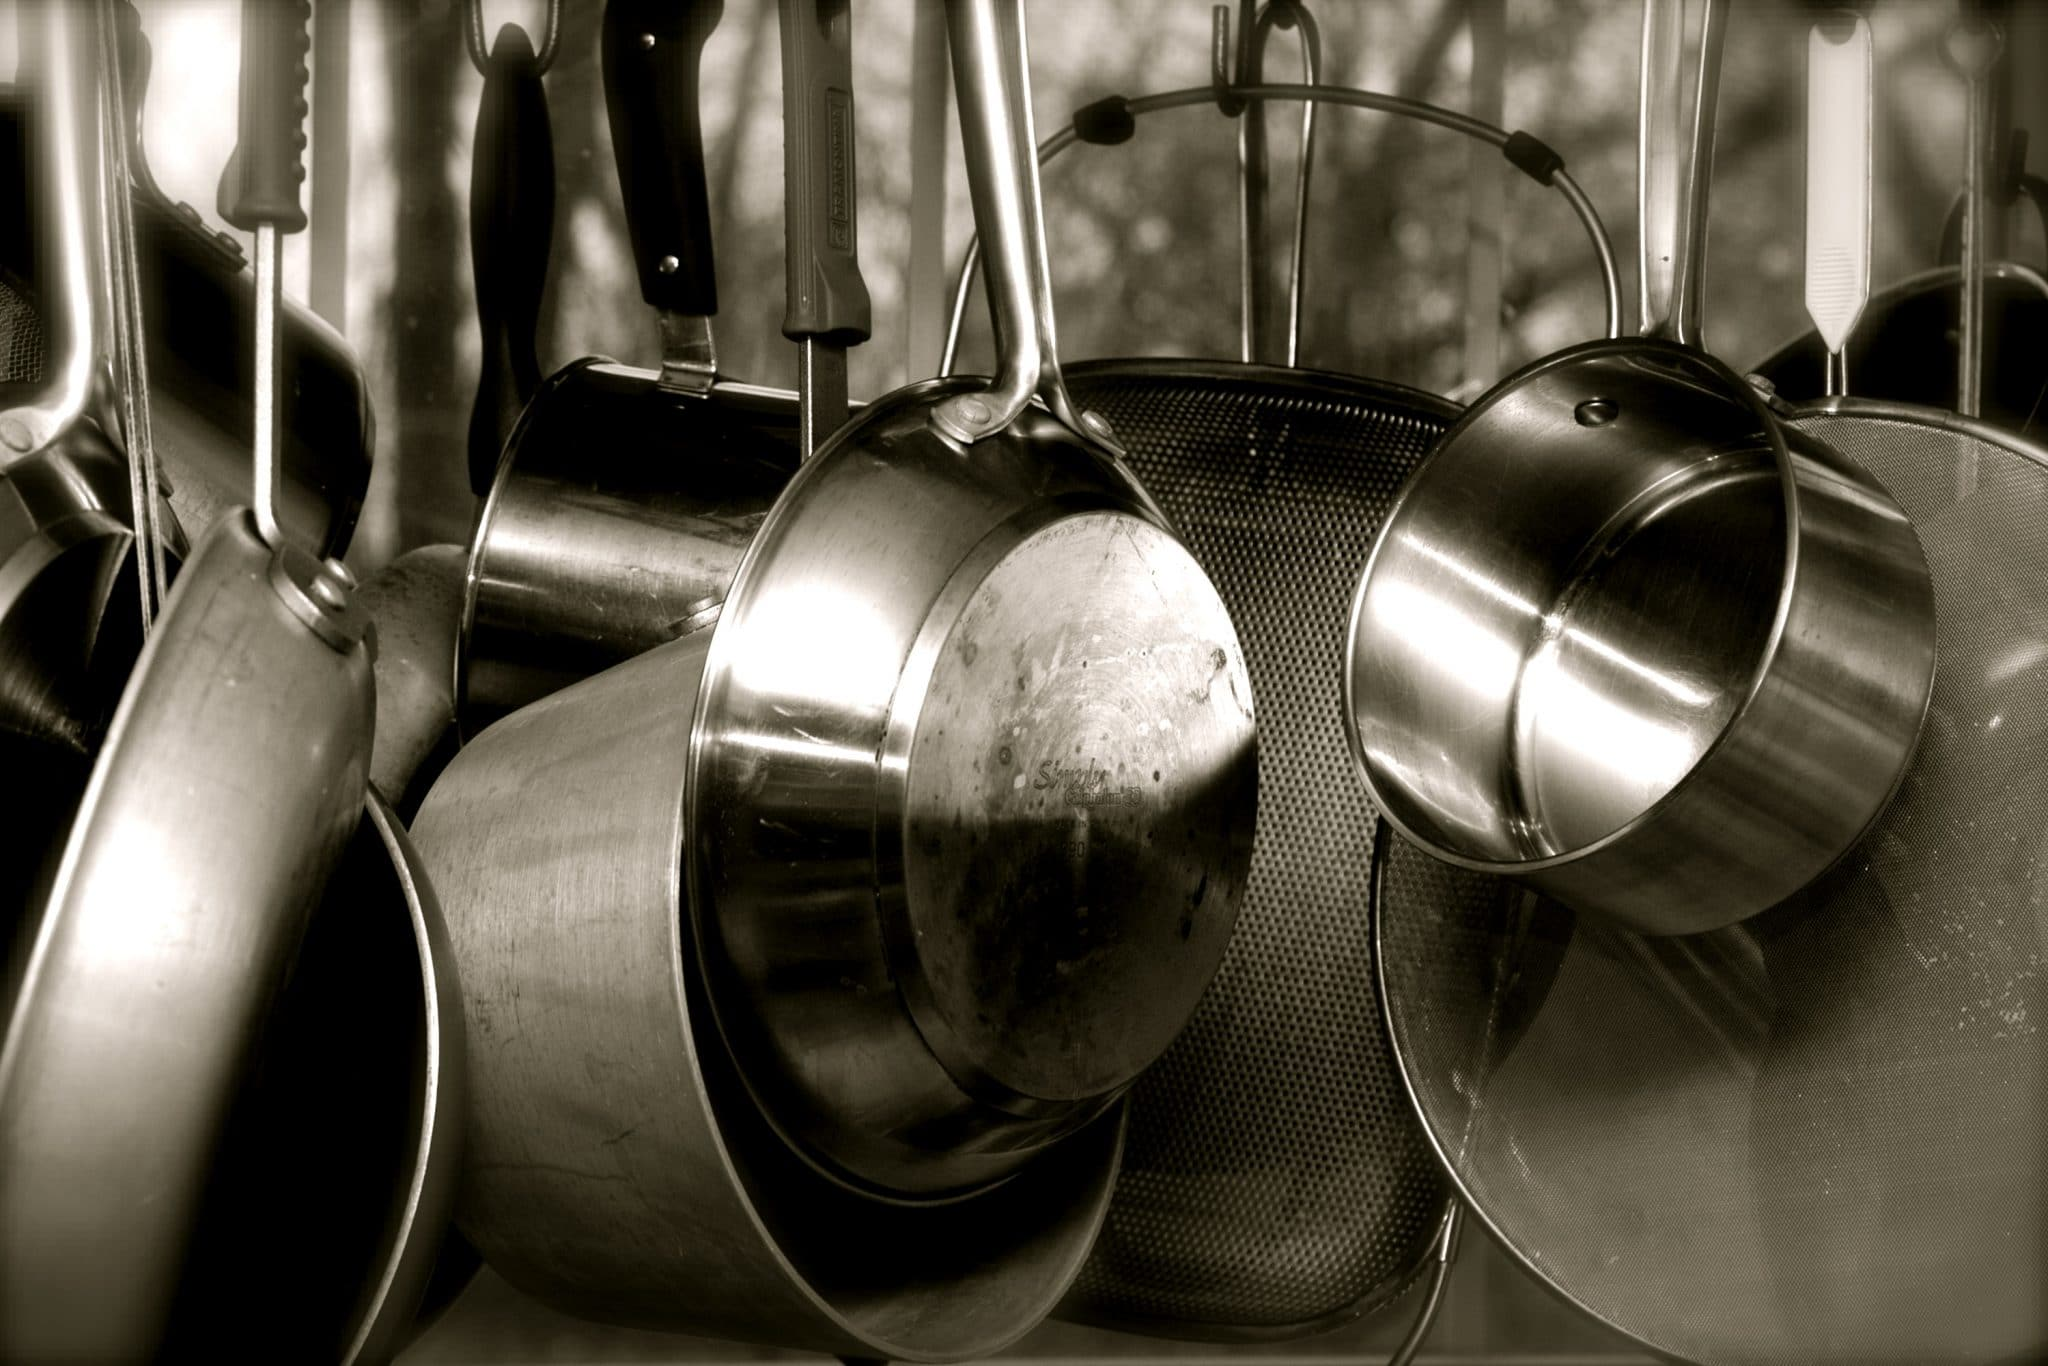 stainless steel cookware pros and cons, top rated stainless steel cookware